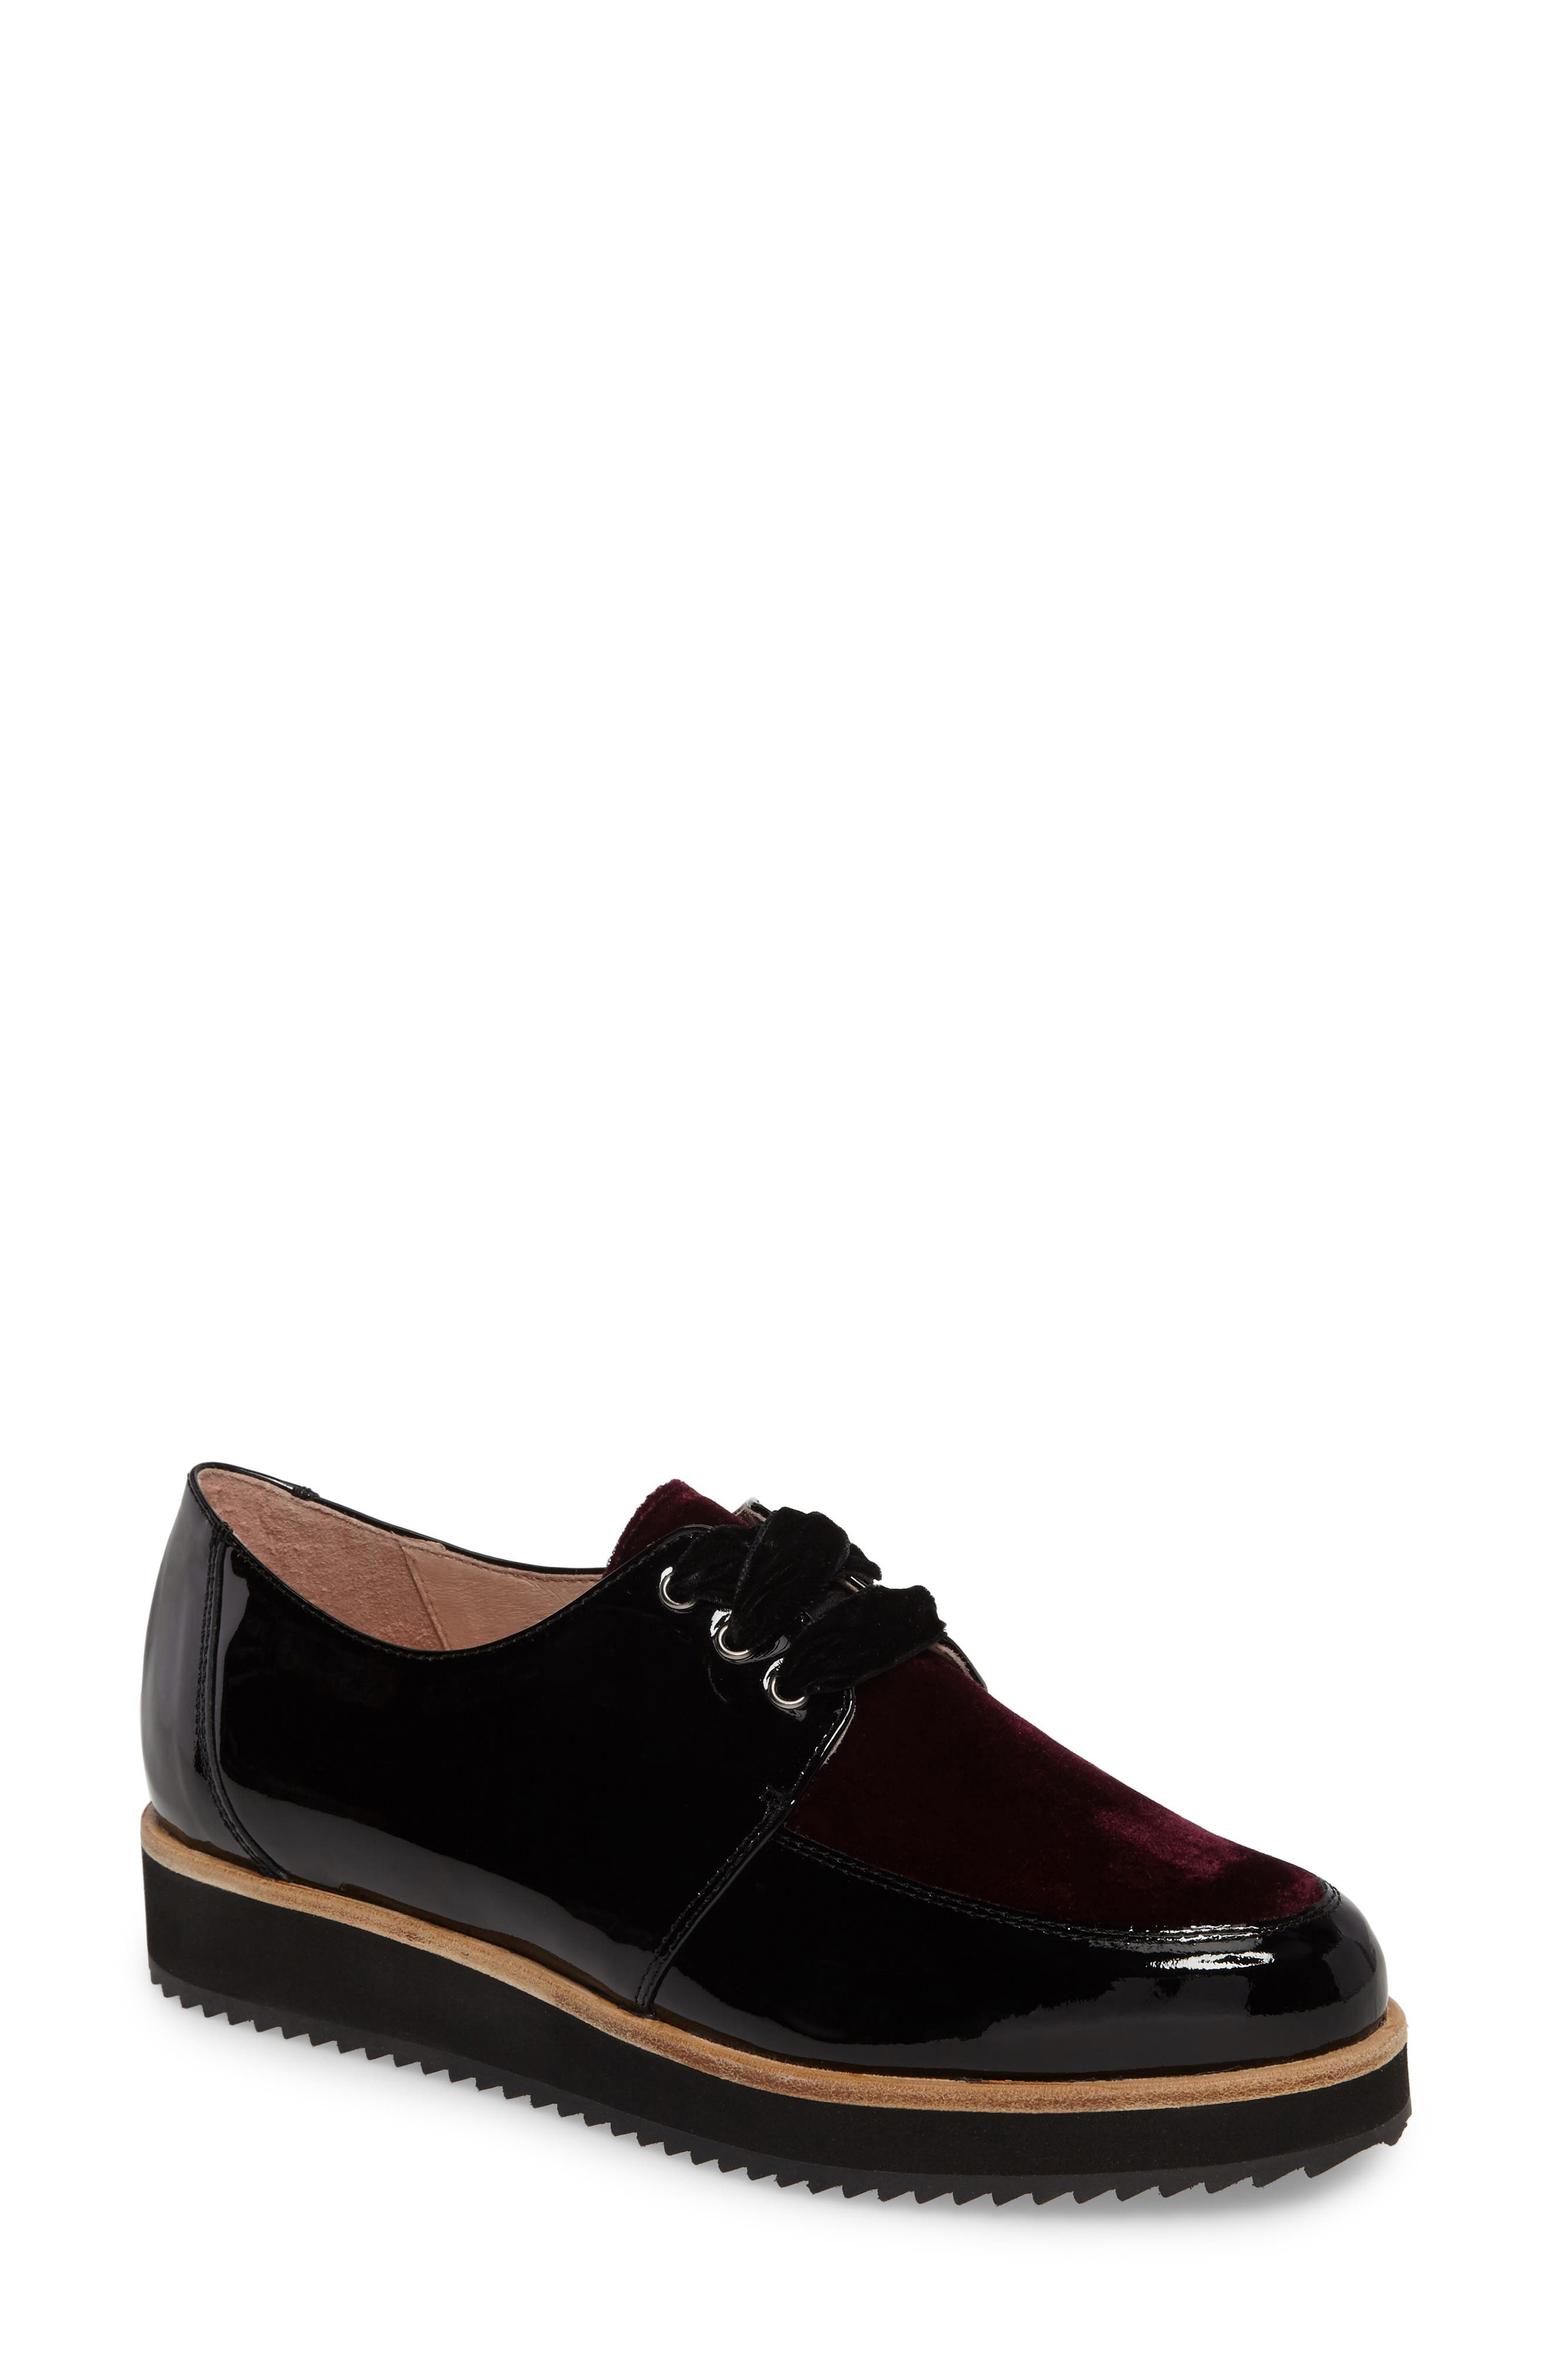 Reese Platform Oxford,                         Main,                         color, Burgundy Patent